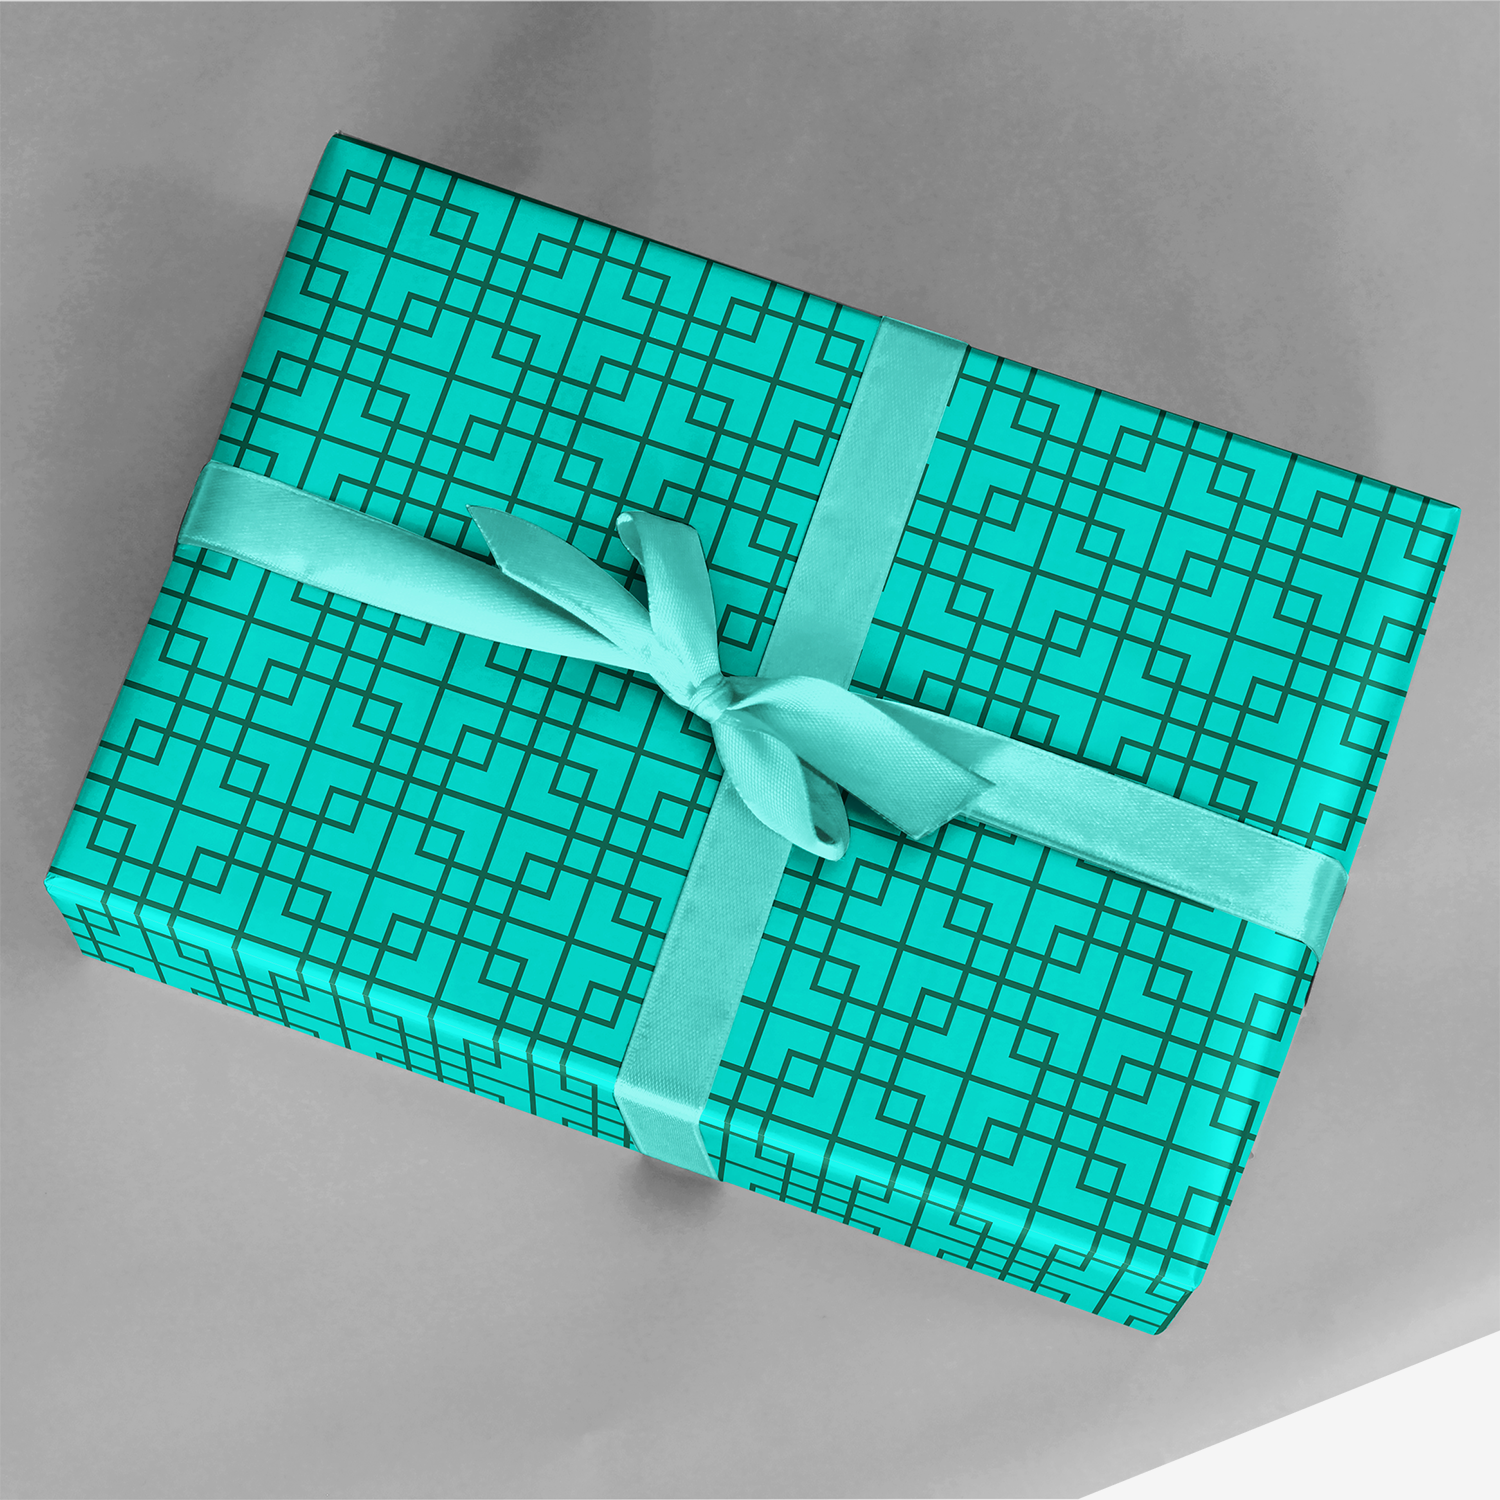 gift wrapped in bright turquoise blue lattice gift wrap with light blue ribbon